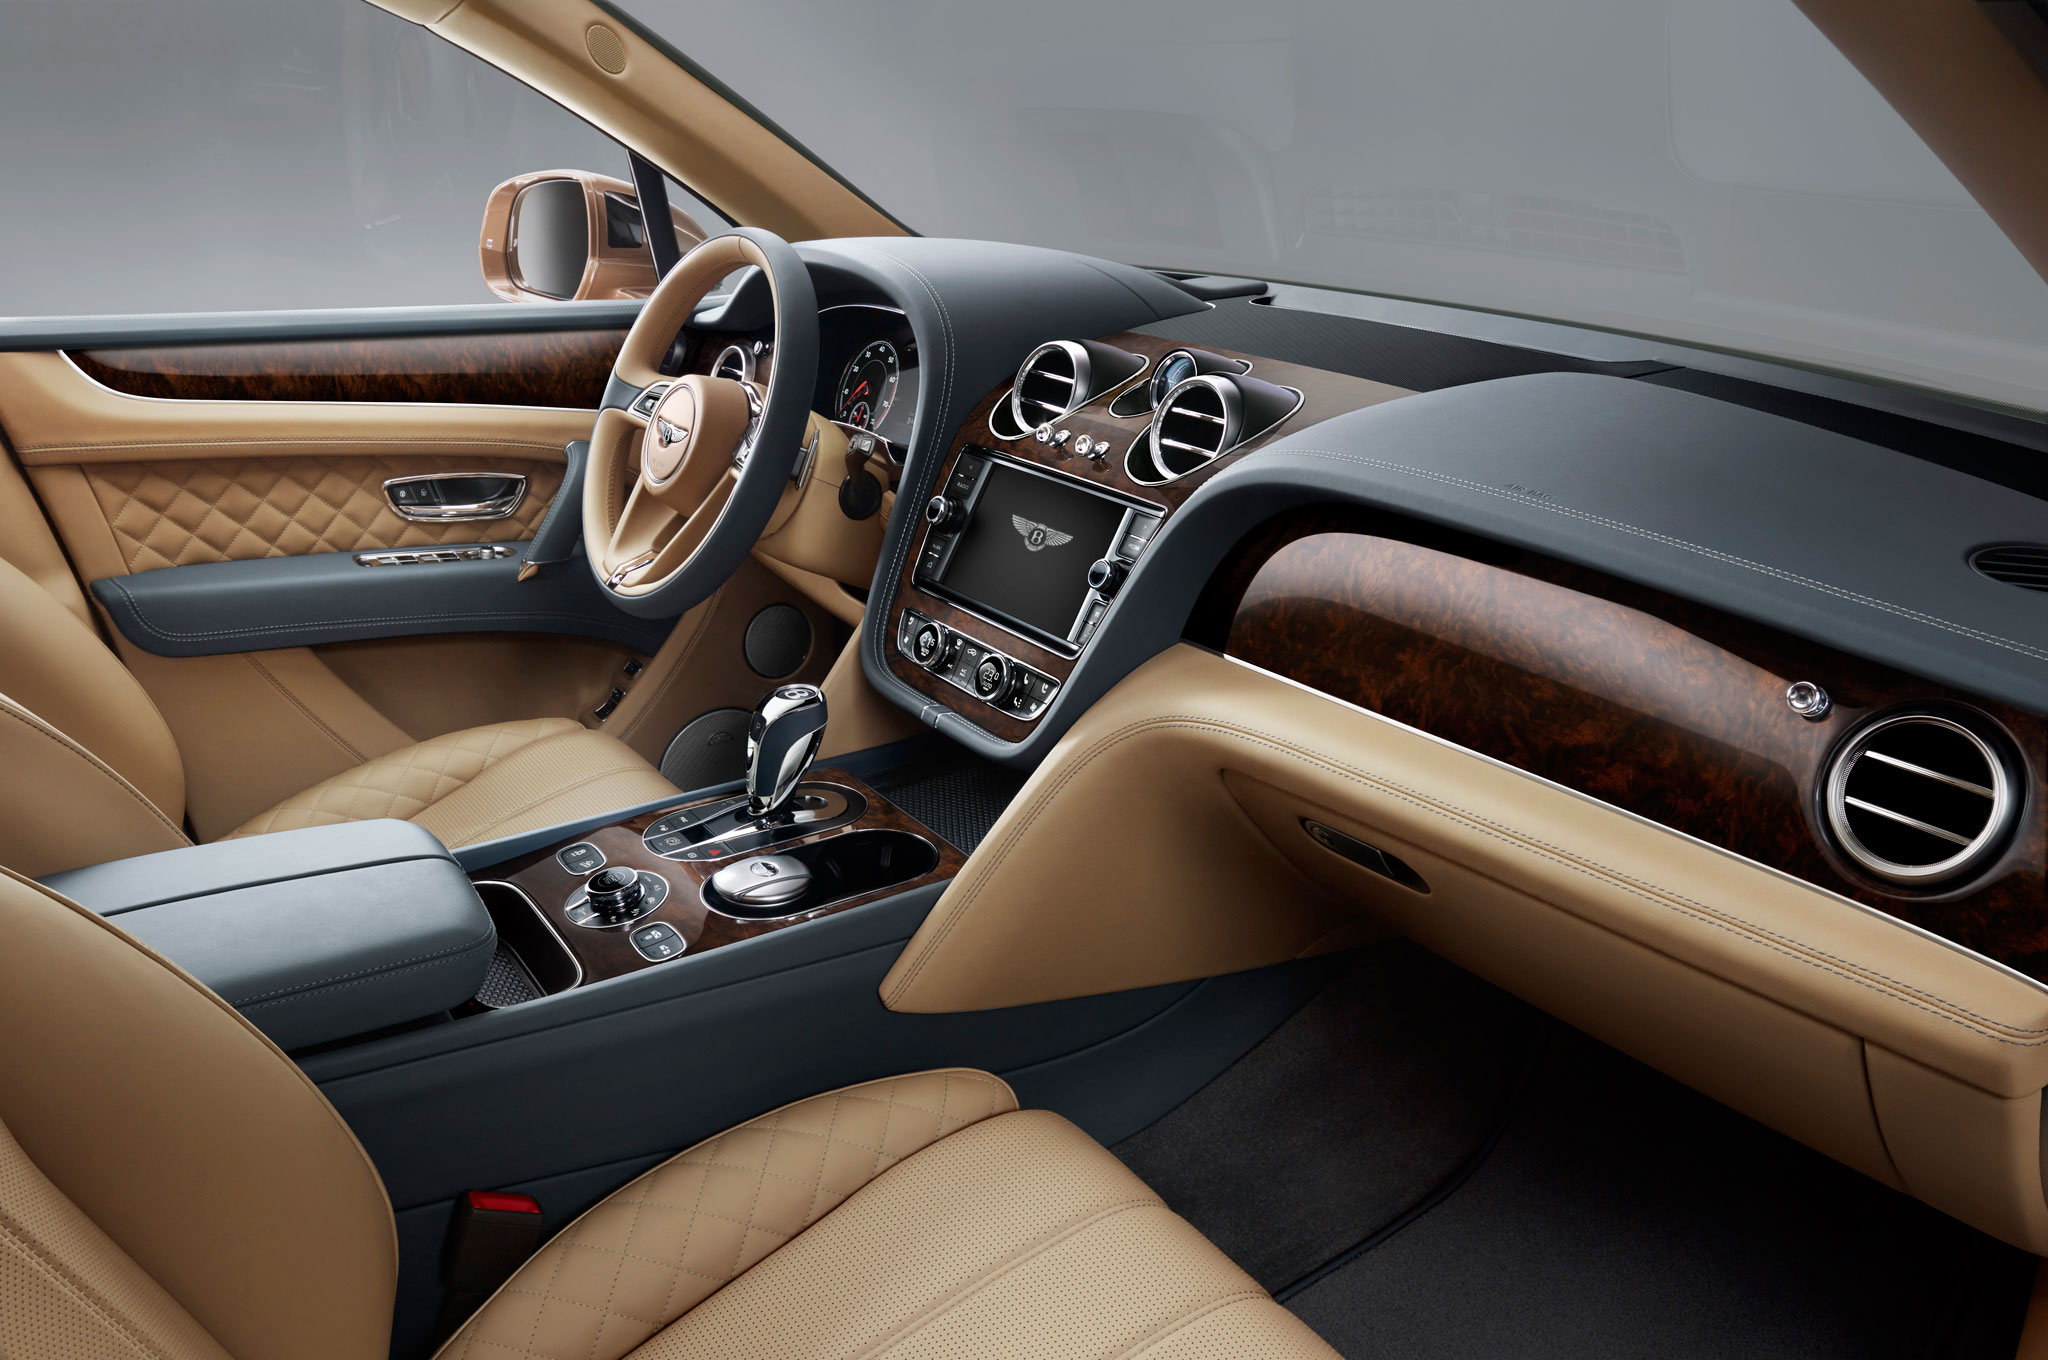 2017 Bentley Bentayga Dashboard Interior